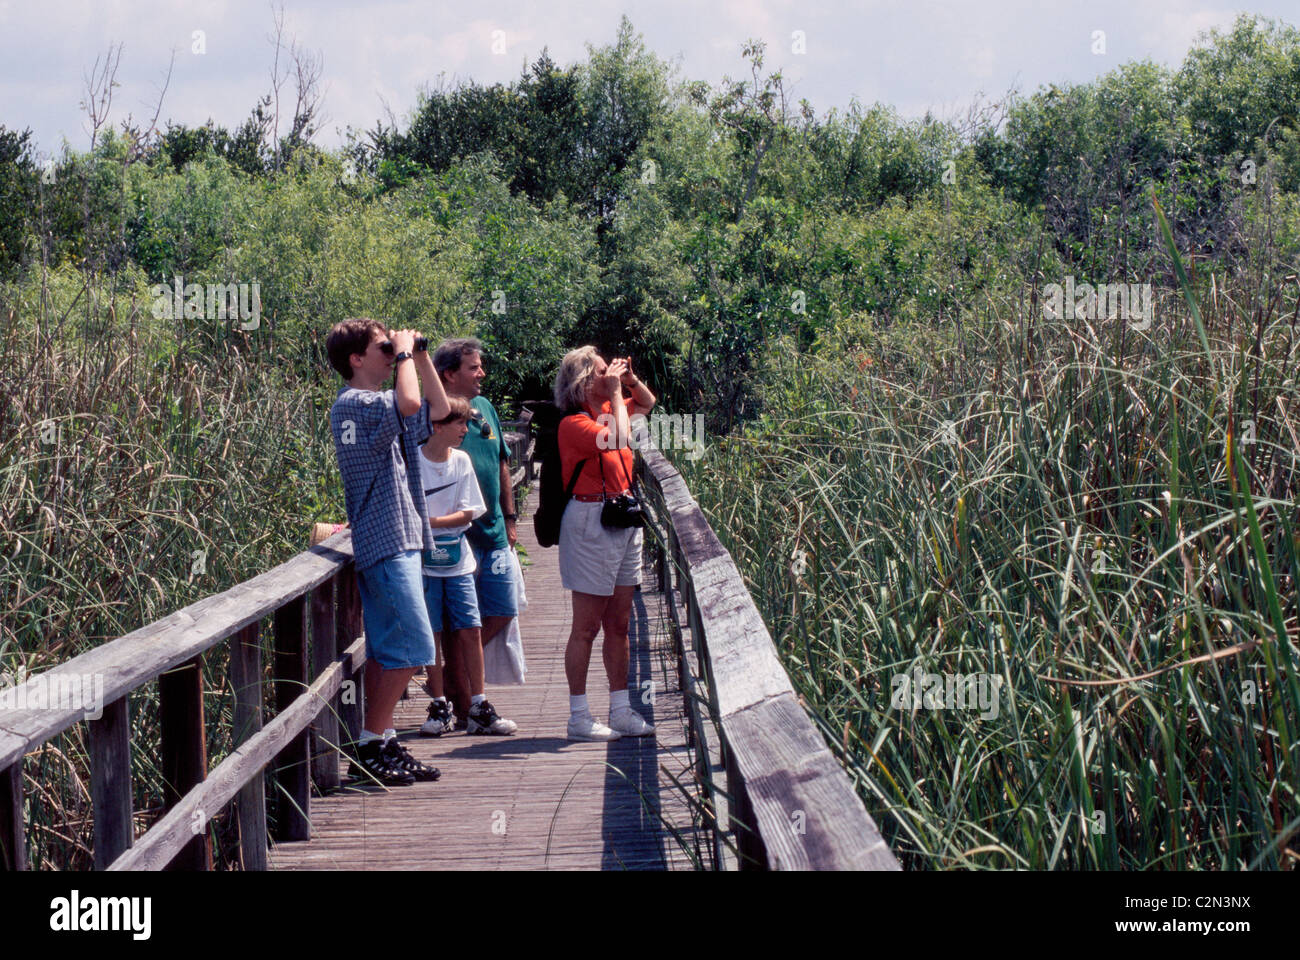 A family searches with binoculars for birds from an elevated boardwalk above this wetlands wilderness in Florida's - Stock Image